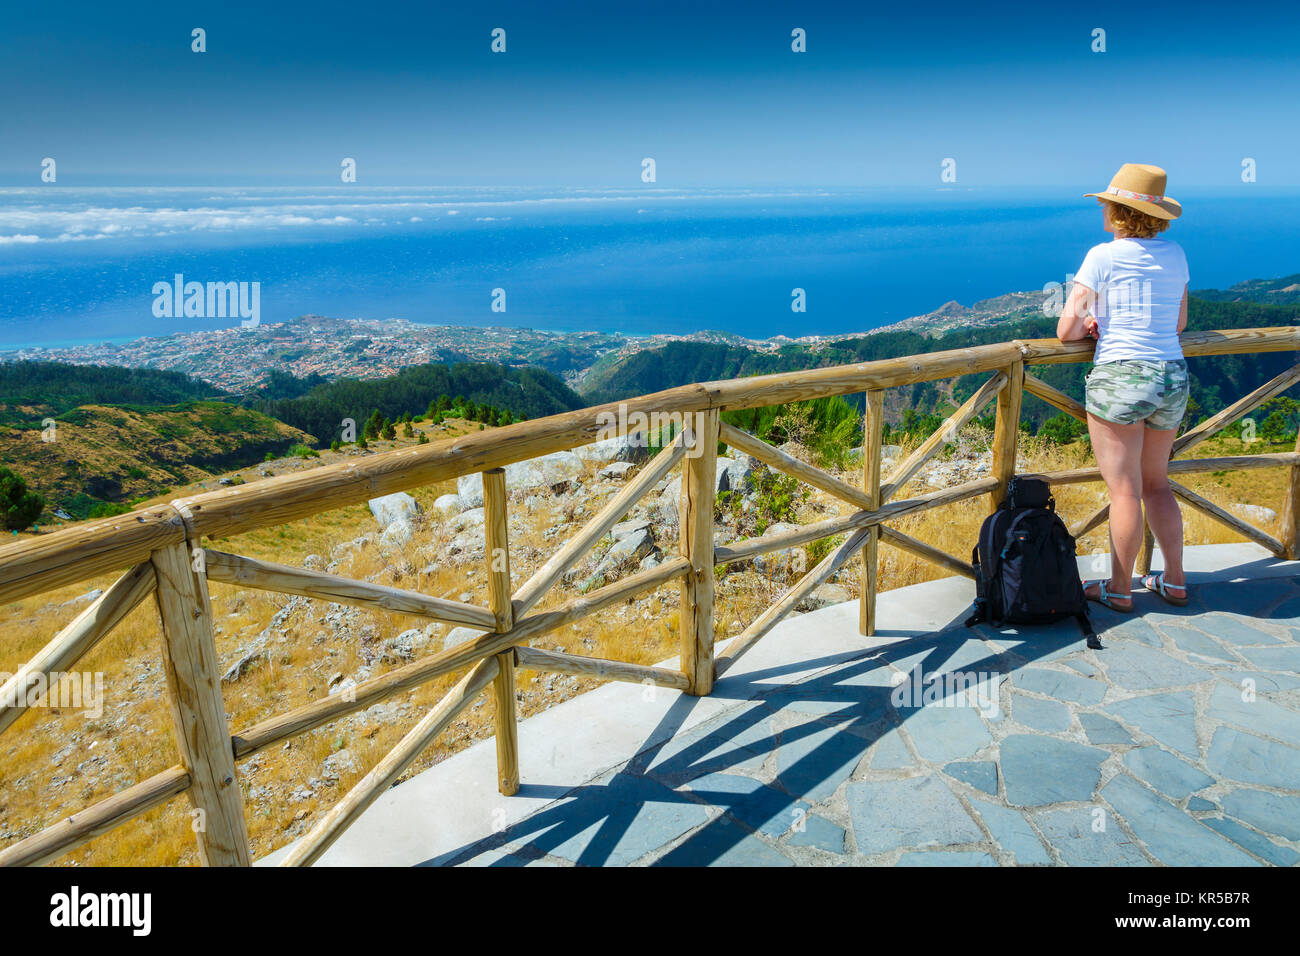 Woman in a viewpoint. Paredao viewpoint. Madeira, Portugal, Europe. - Stock Image